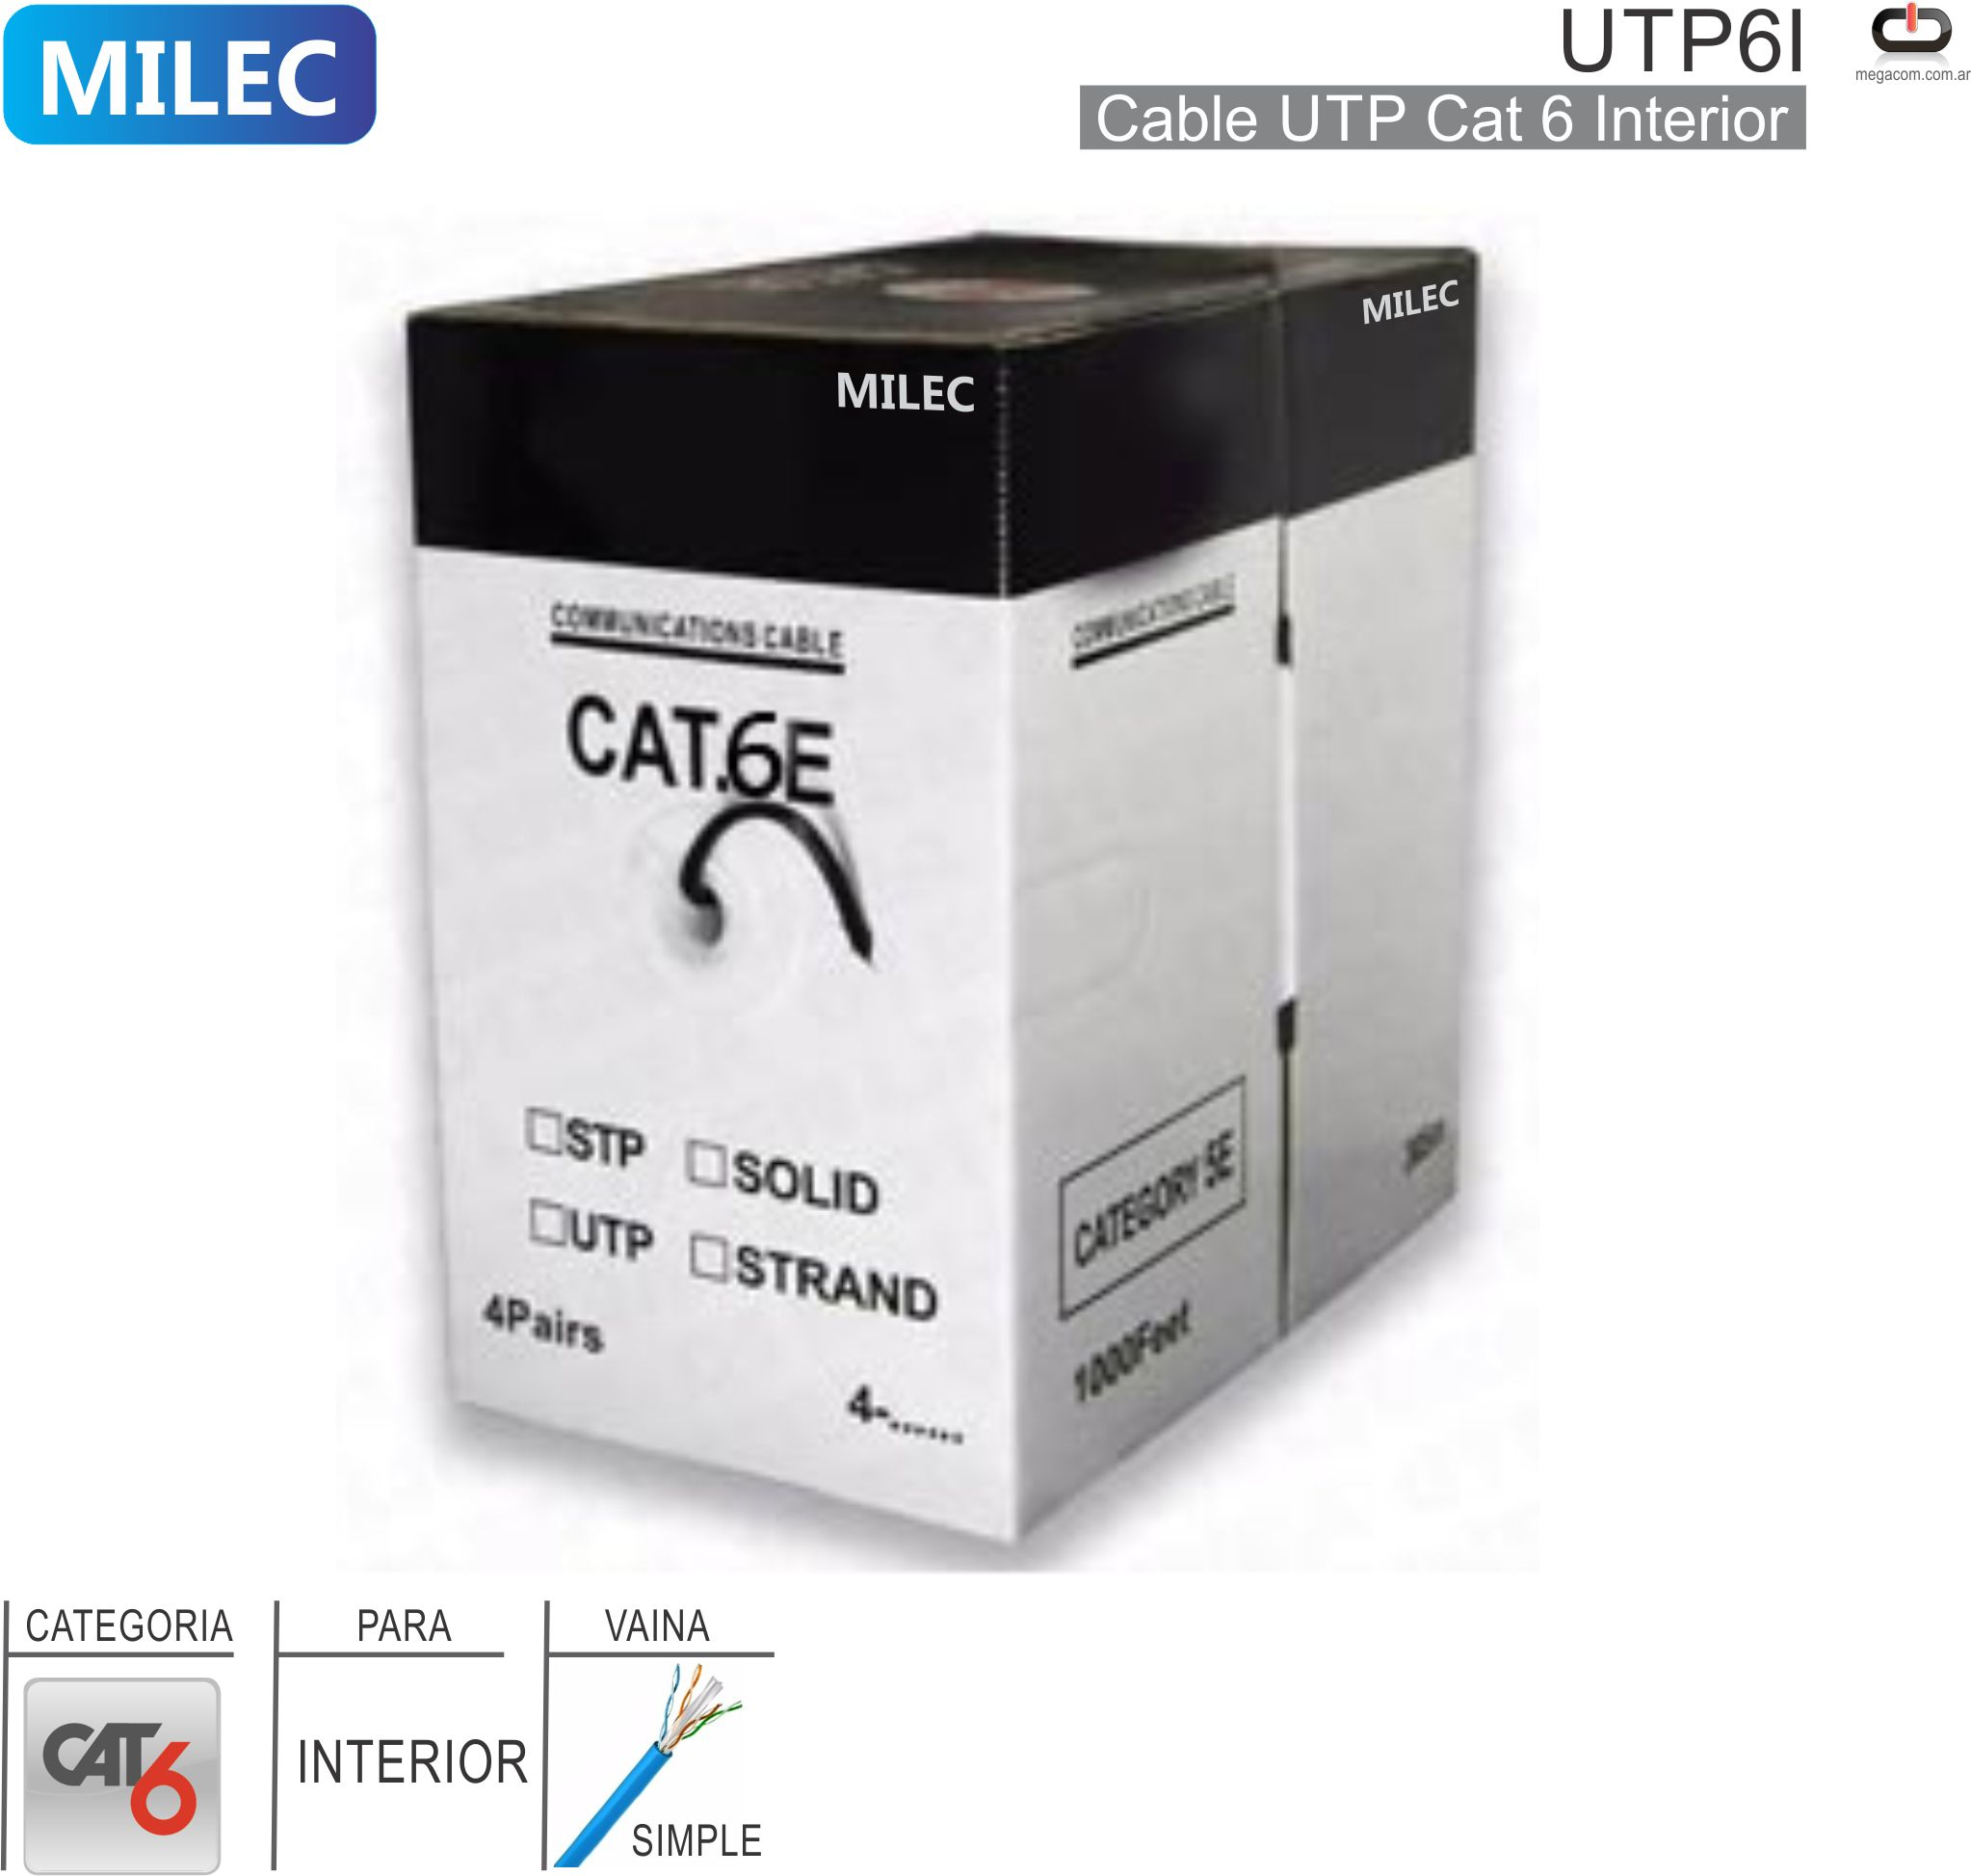 Cable UTP Cat6 Interior 001M MILEC UTP6I